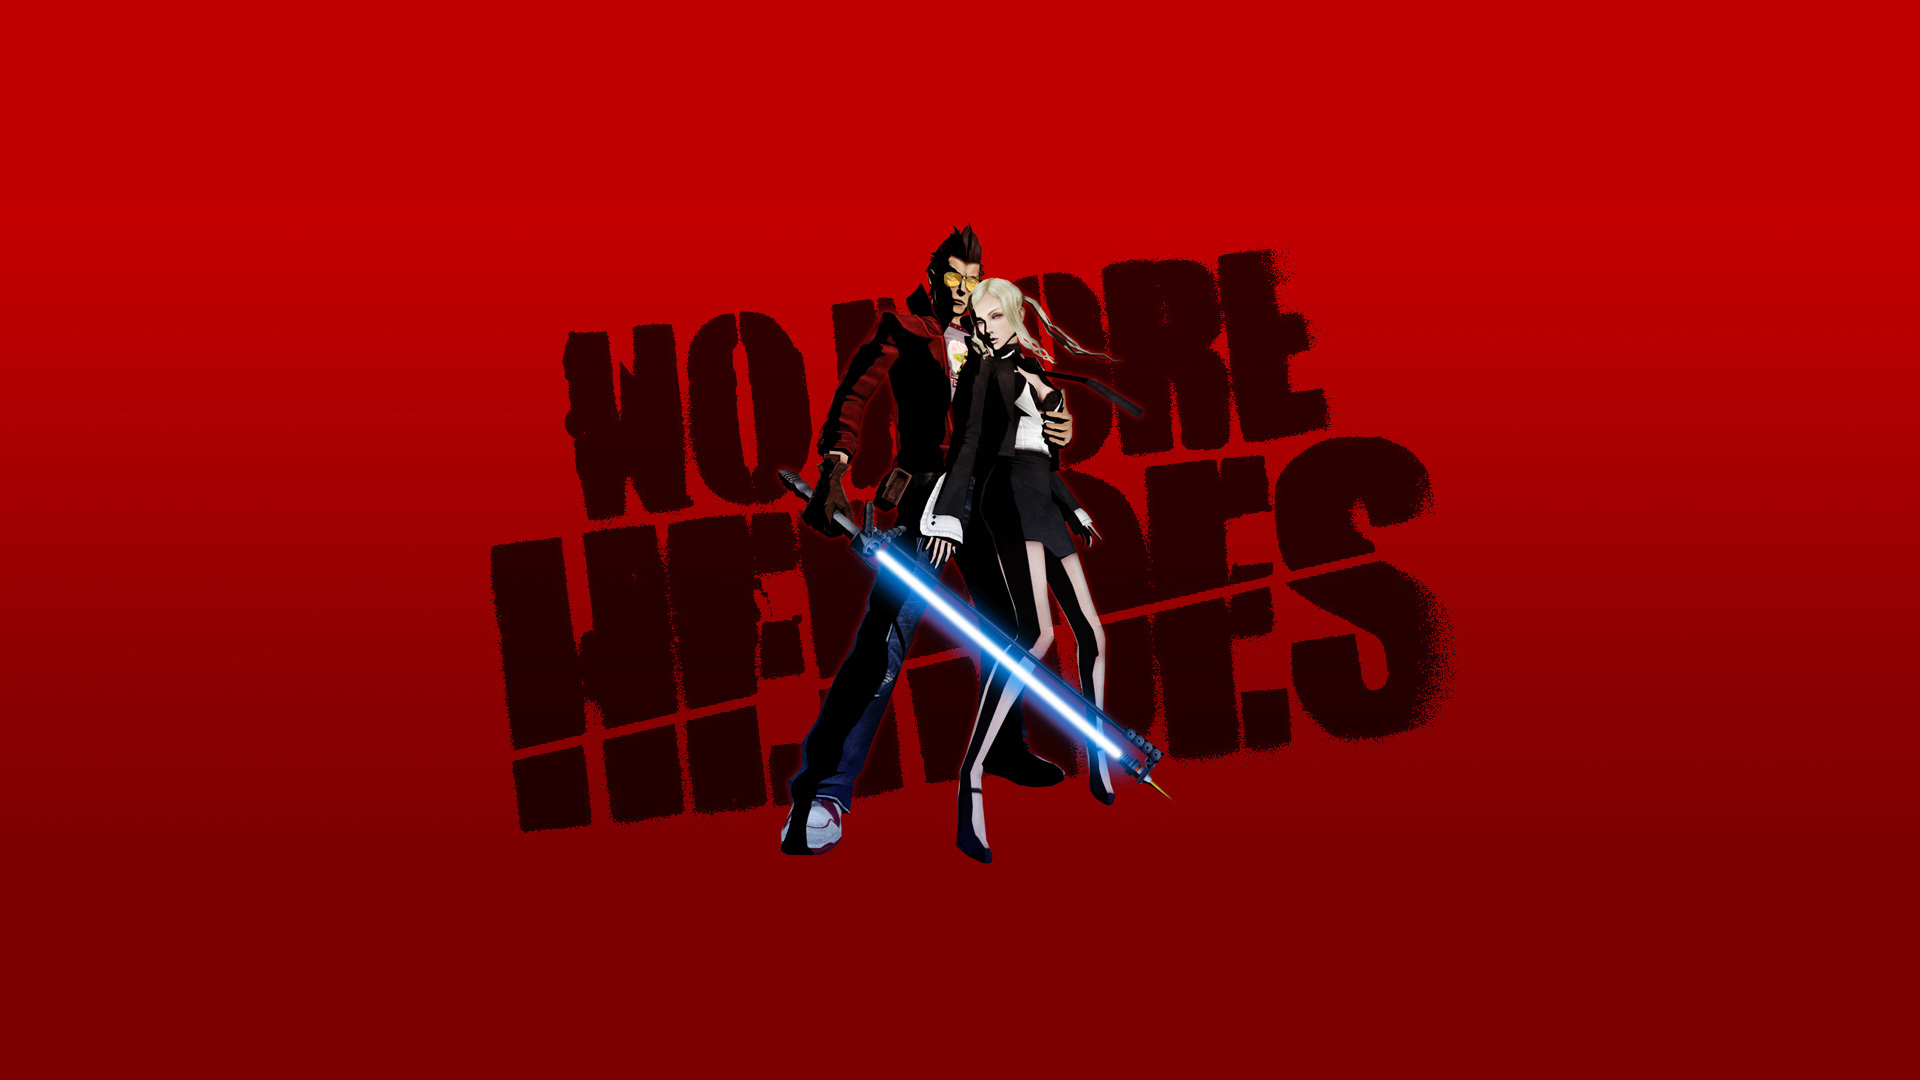 Free No More Heroes Wallpaper in 1920x1080